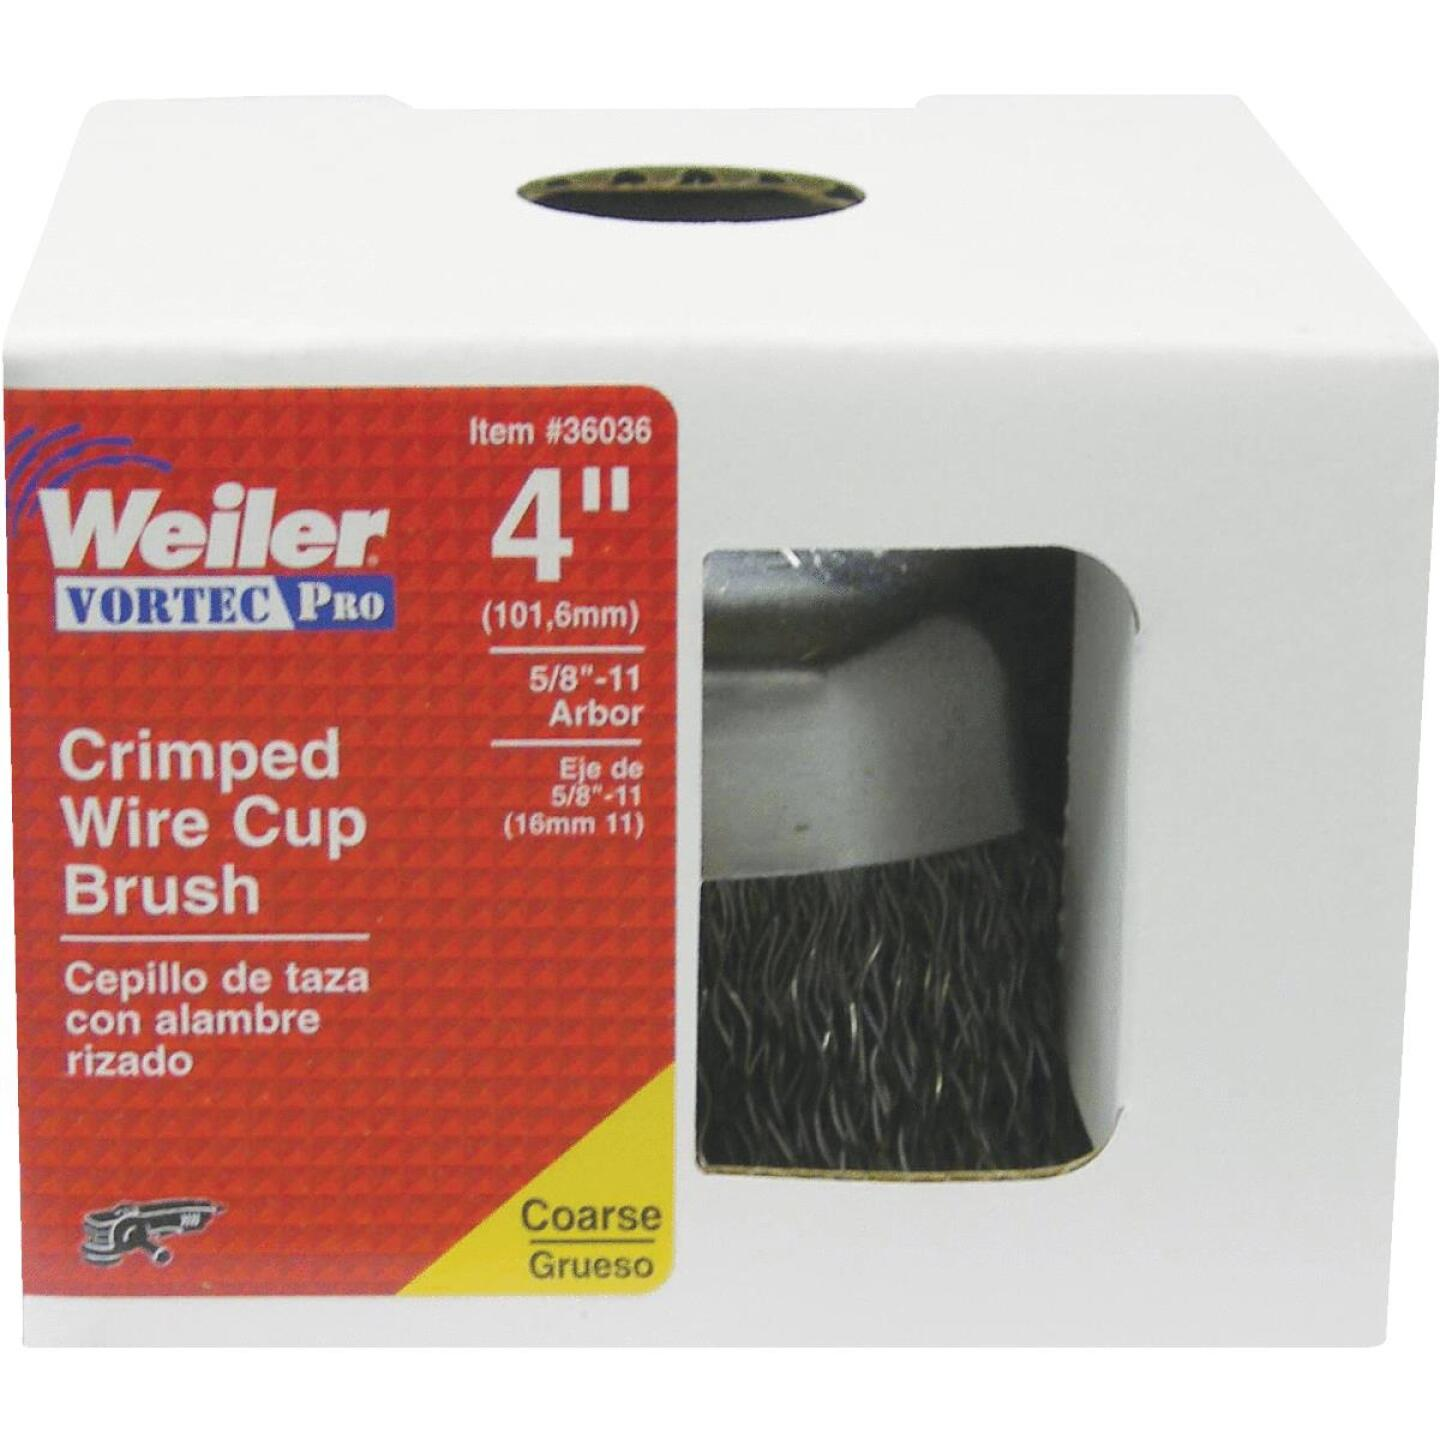 Weiler Vortec 4 In. Crimped 0.02 In. Angle Grinder Wire Brush Image 2